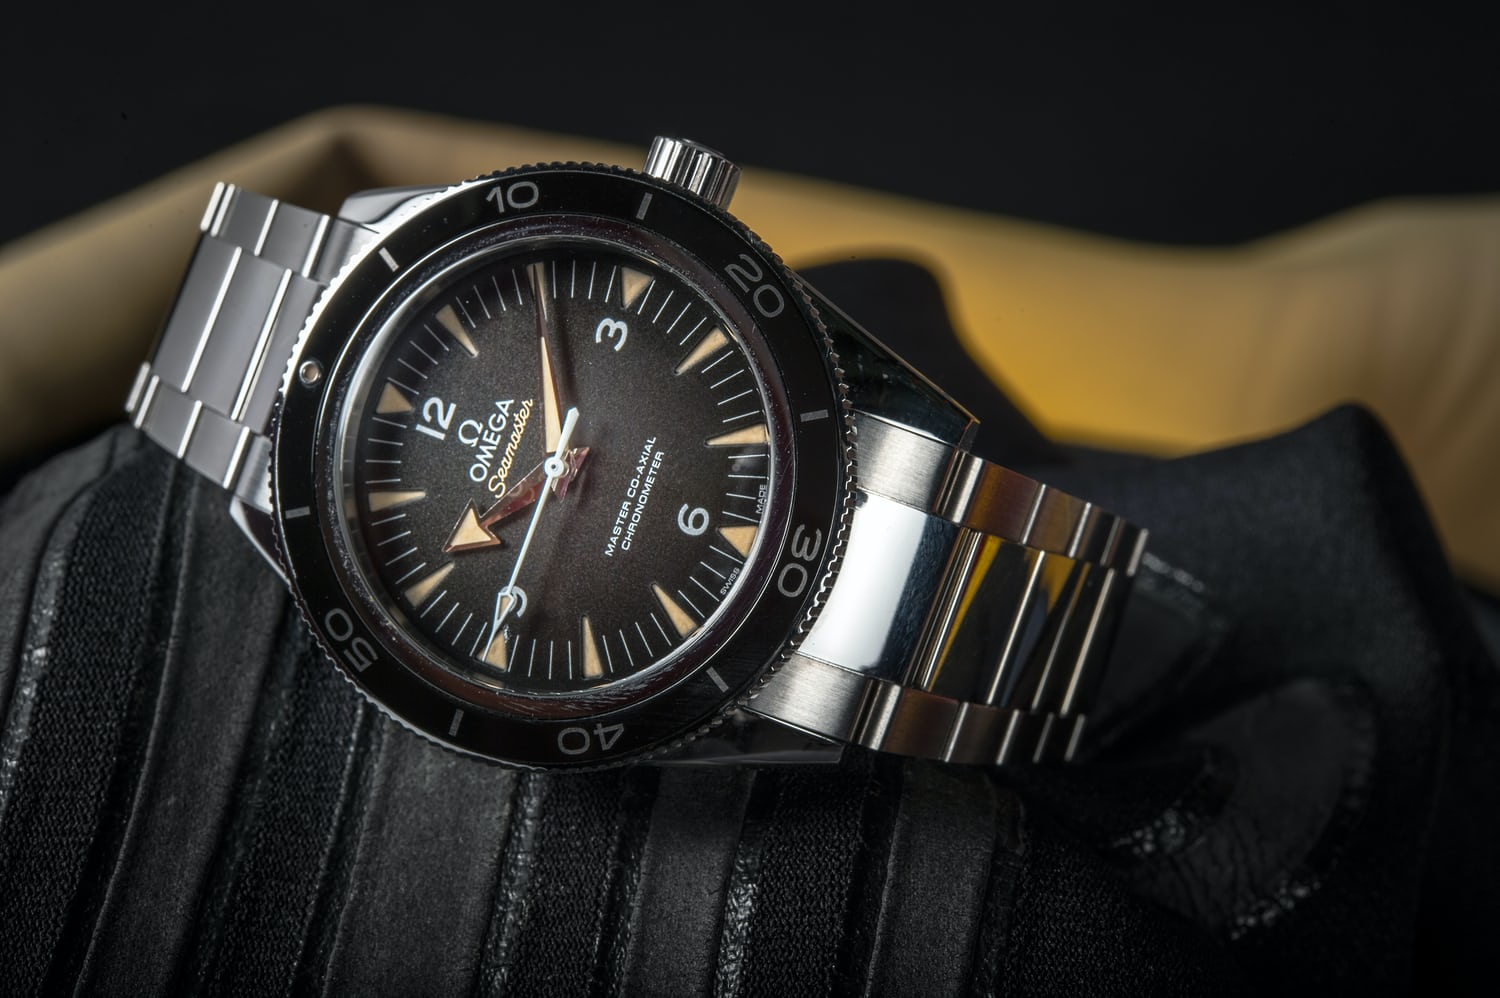 4519cd1352ae In-Depth  Diving Into The Past With The New Omega Seamaster 300 Master  Co-Axial - HODINKEE